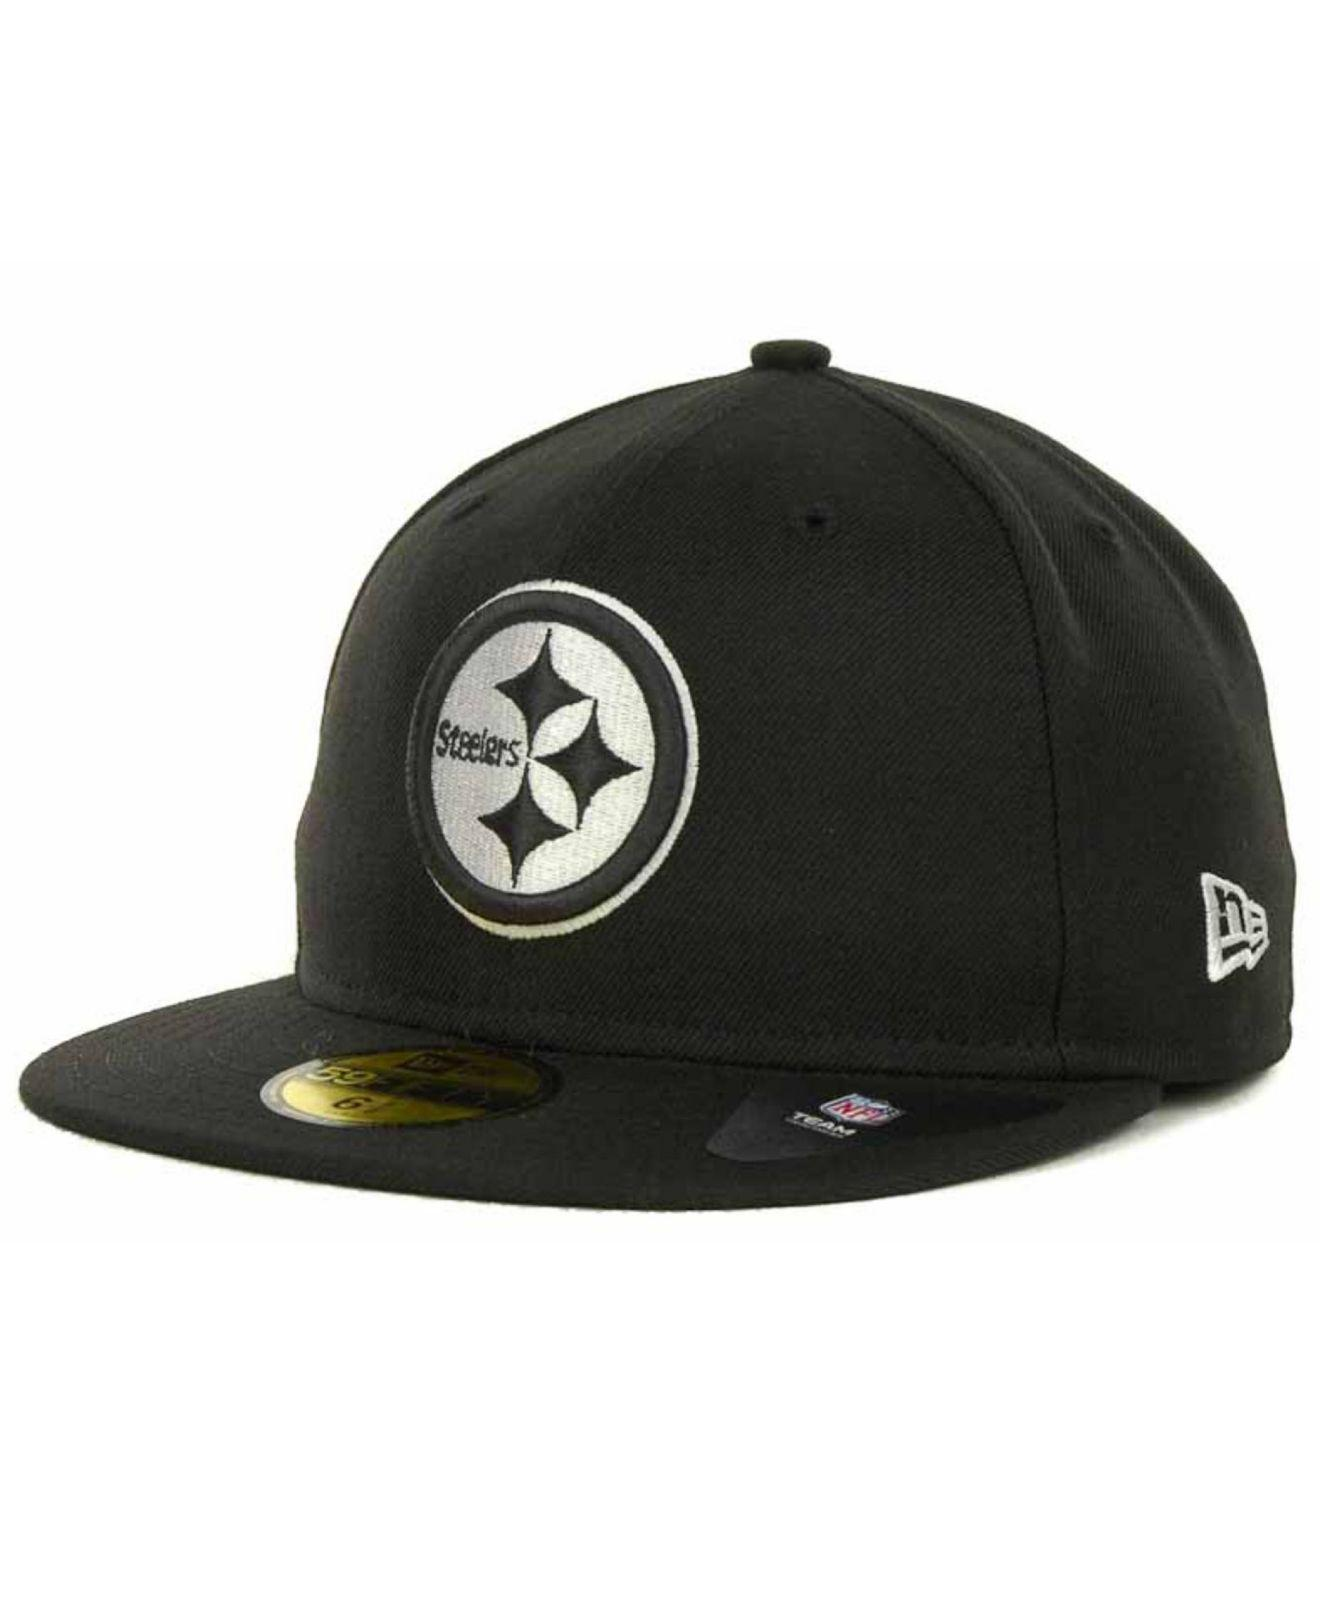 7a466aab4d5 Lyst - Ktz Pittsburgh Steelers 59fifty Cap in Black for Men